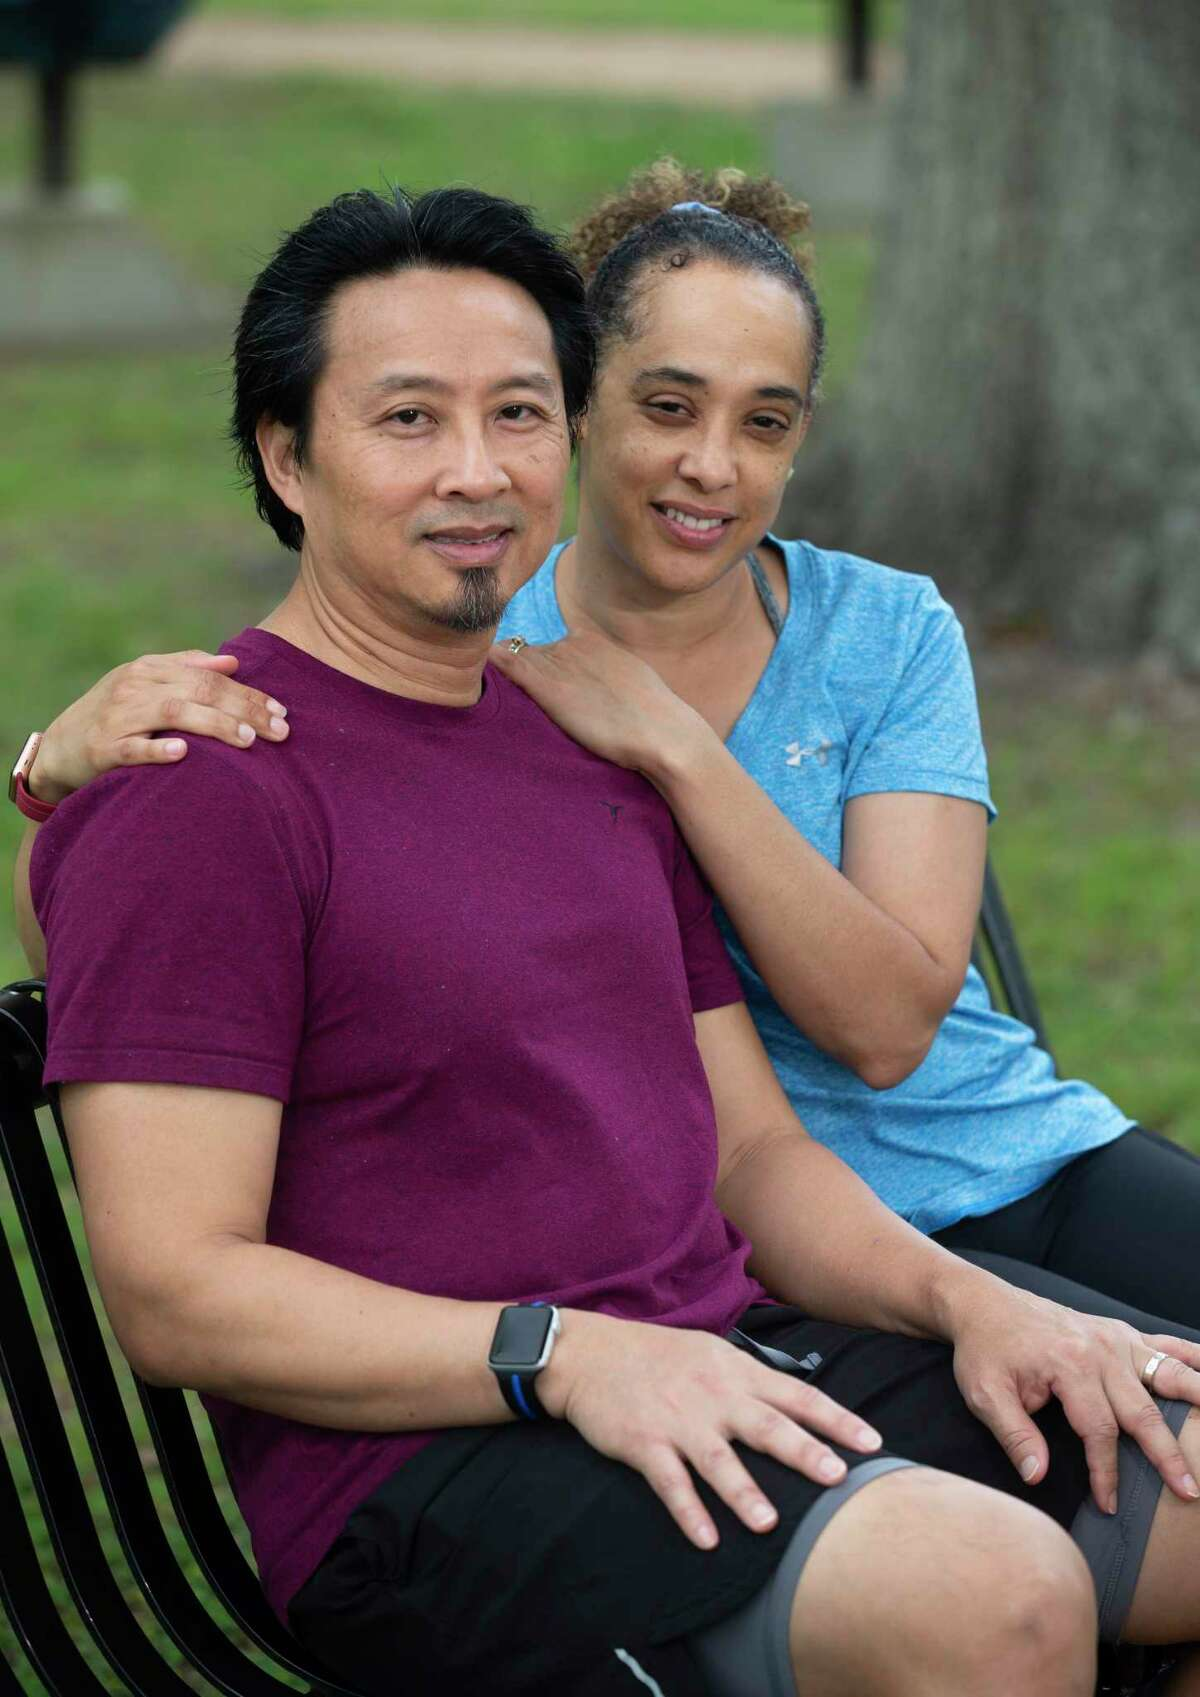 Active runner Ganesa and Quan Collins pose for a photograph on their usual running trail Saturday, March 27, 2021, at Independence Park in Pearland. Last July, the couple were on this route, when Quan, 50, blacked out and fell over with a cardiac arrest on this bench. Luckily, Ganesa, 48, was trained to perform CPR and ended up saving his life.